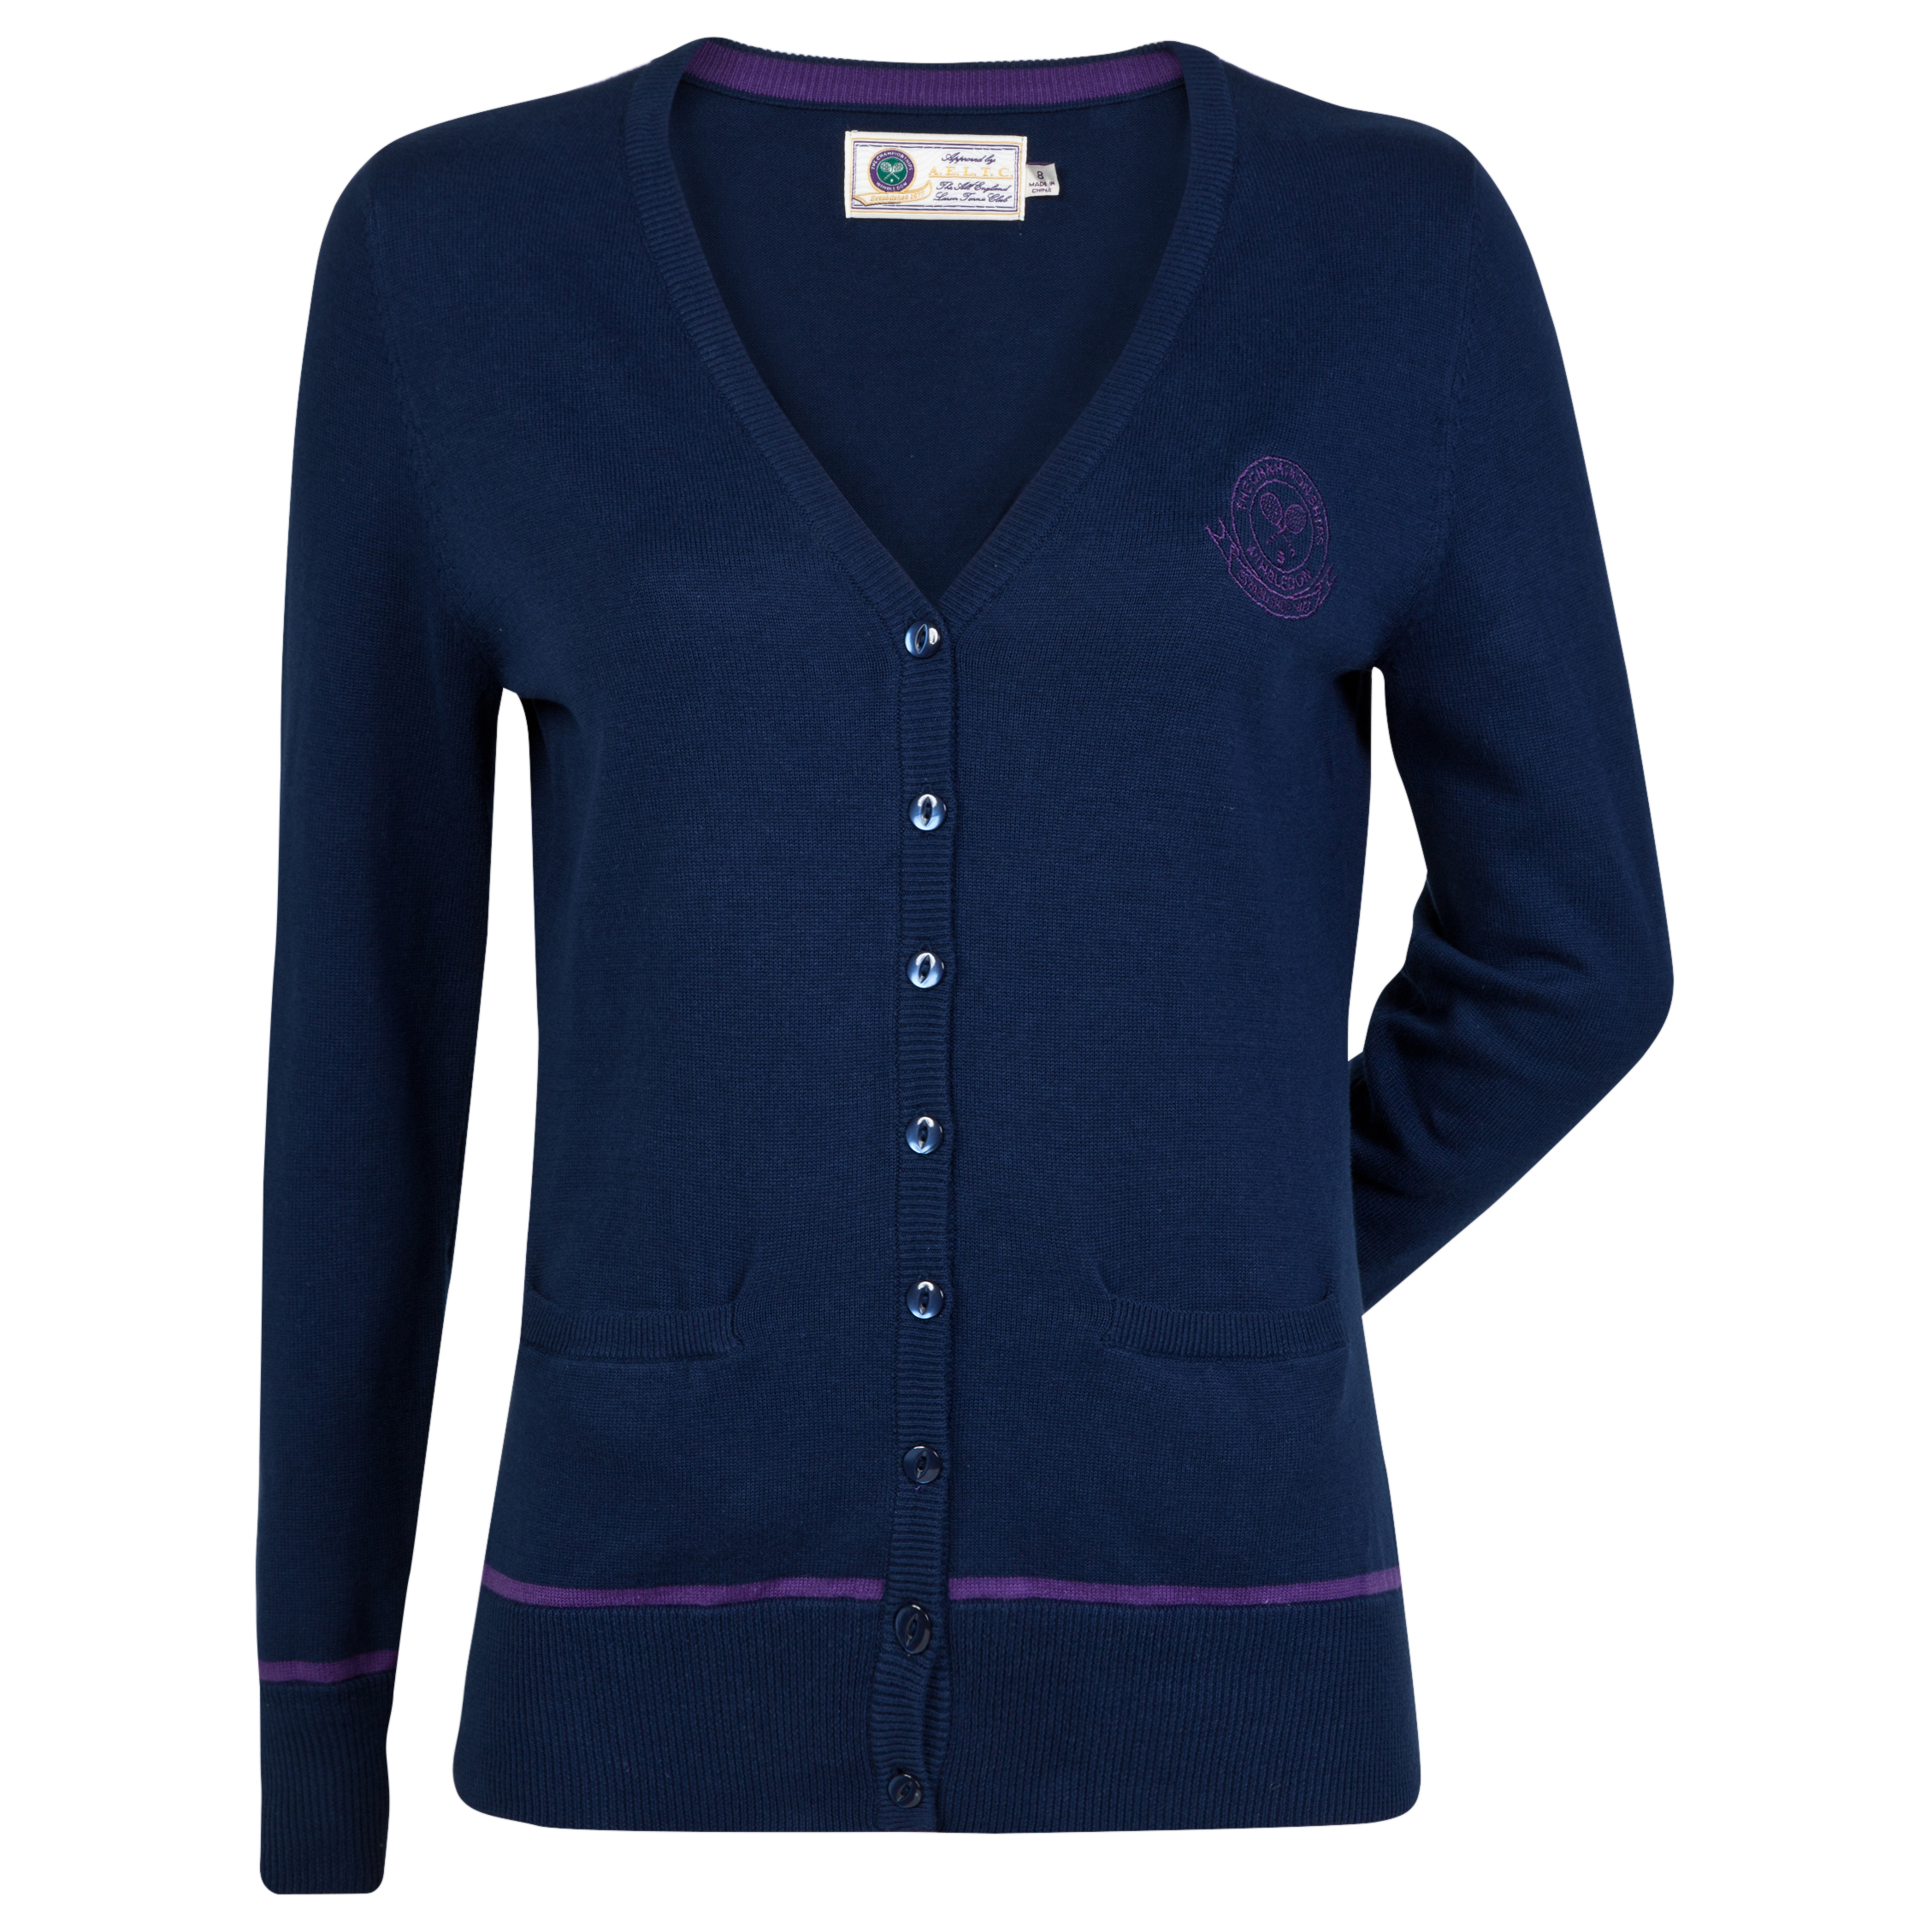 Wimbledon 12 Gauge Knitted Cardigan - Womens Navy